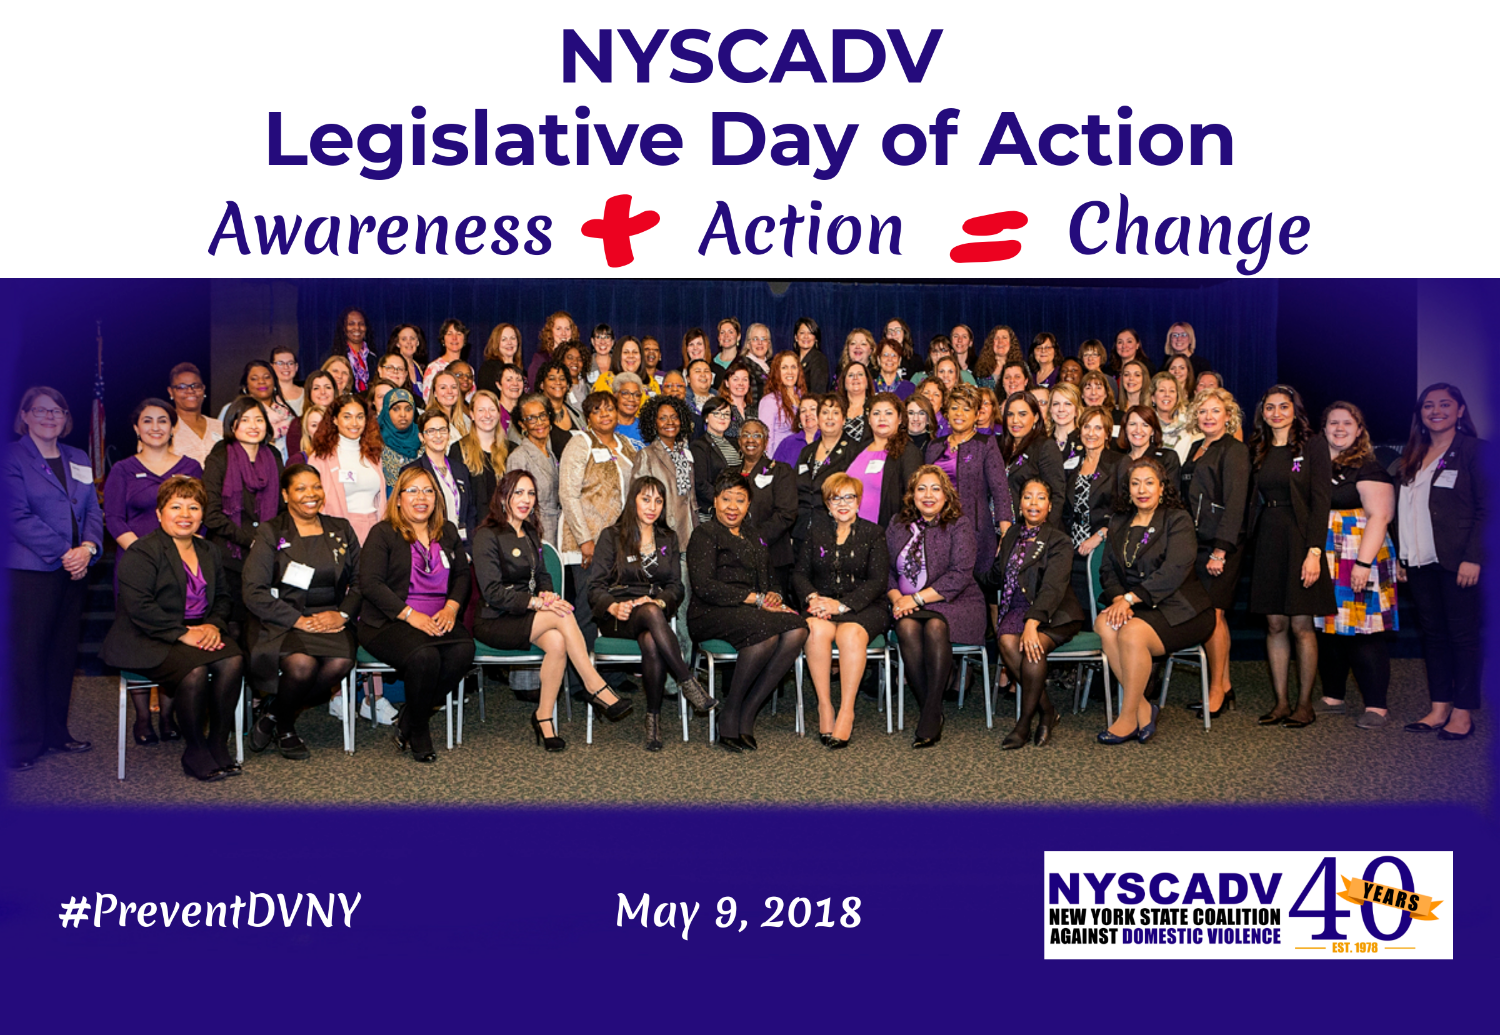 Recap of NYSCADV's Legislative Day of Action 2018